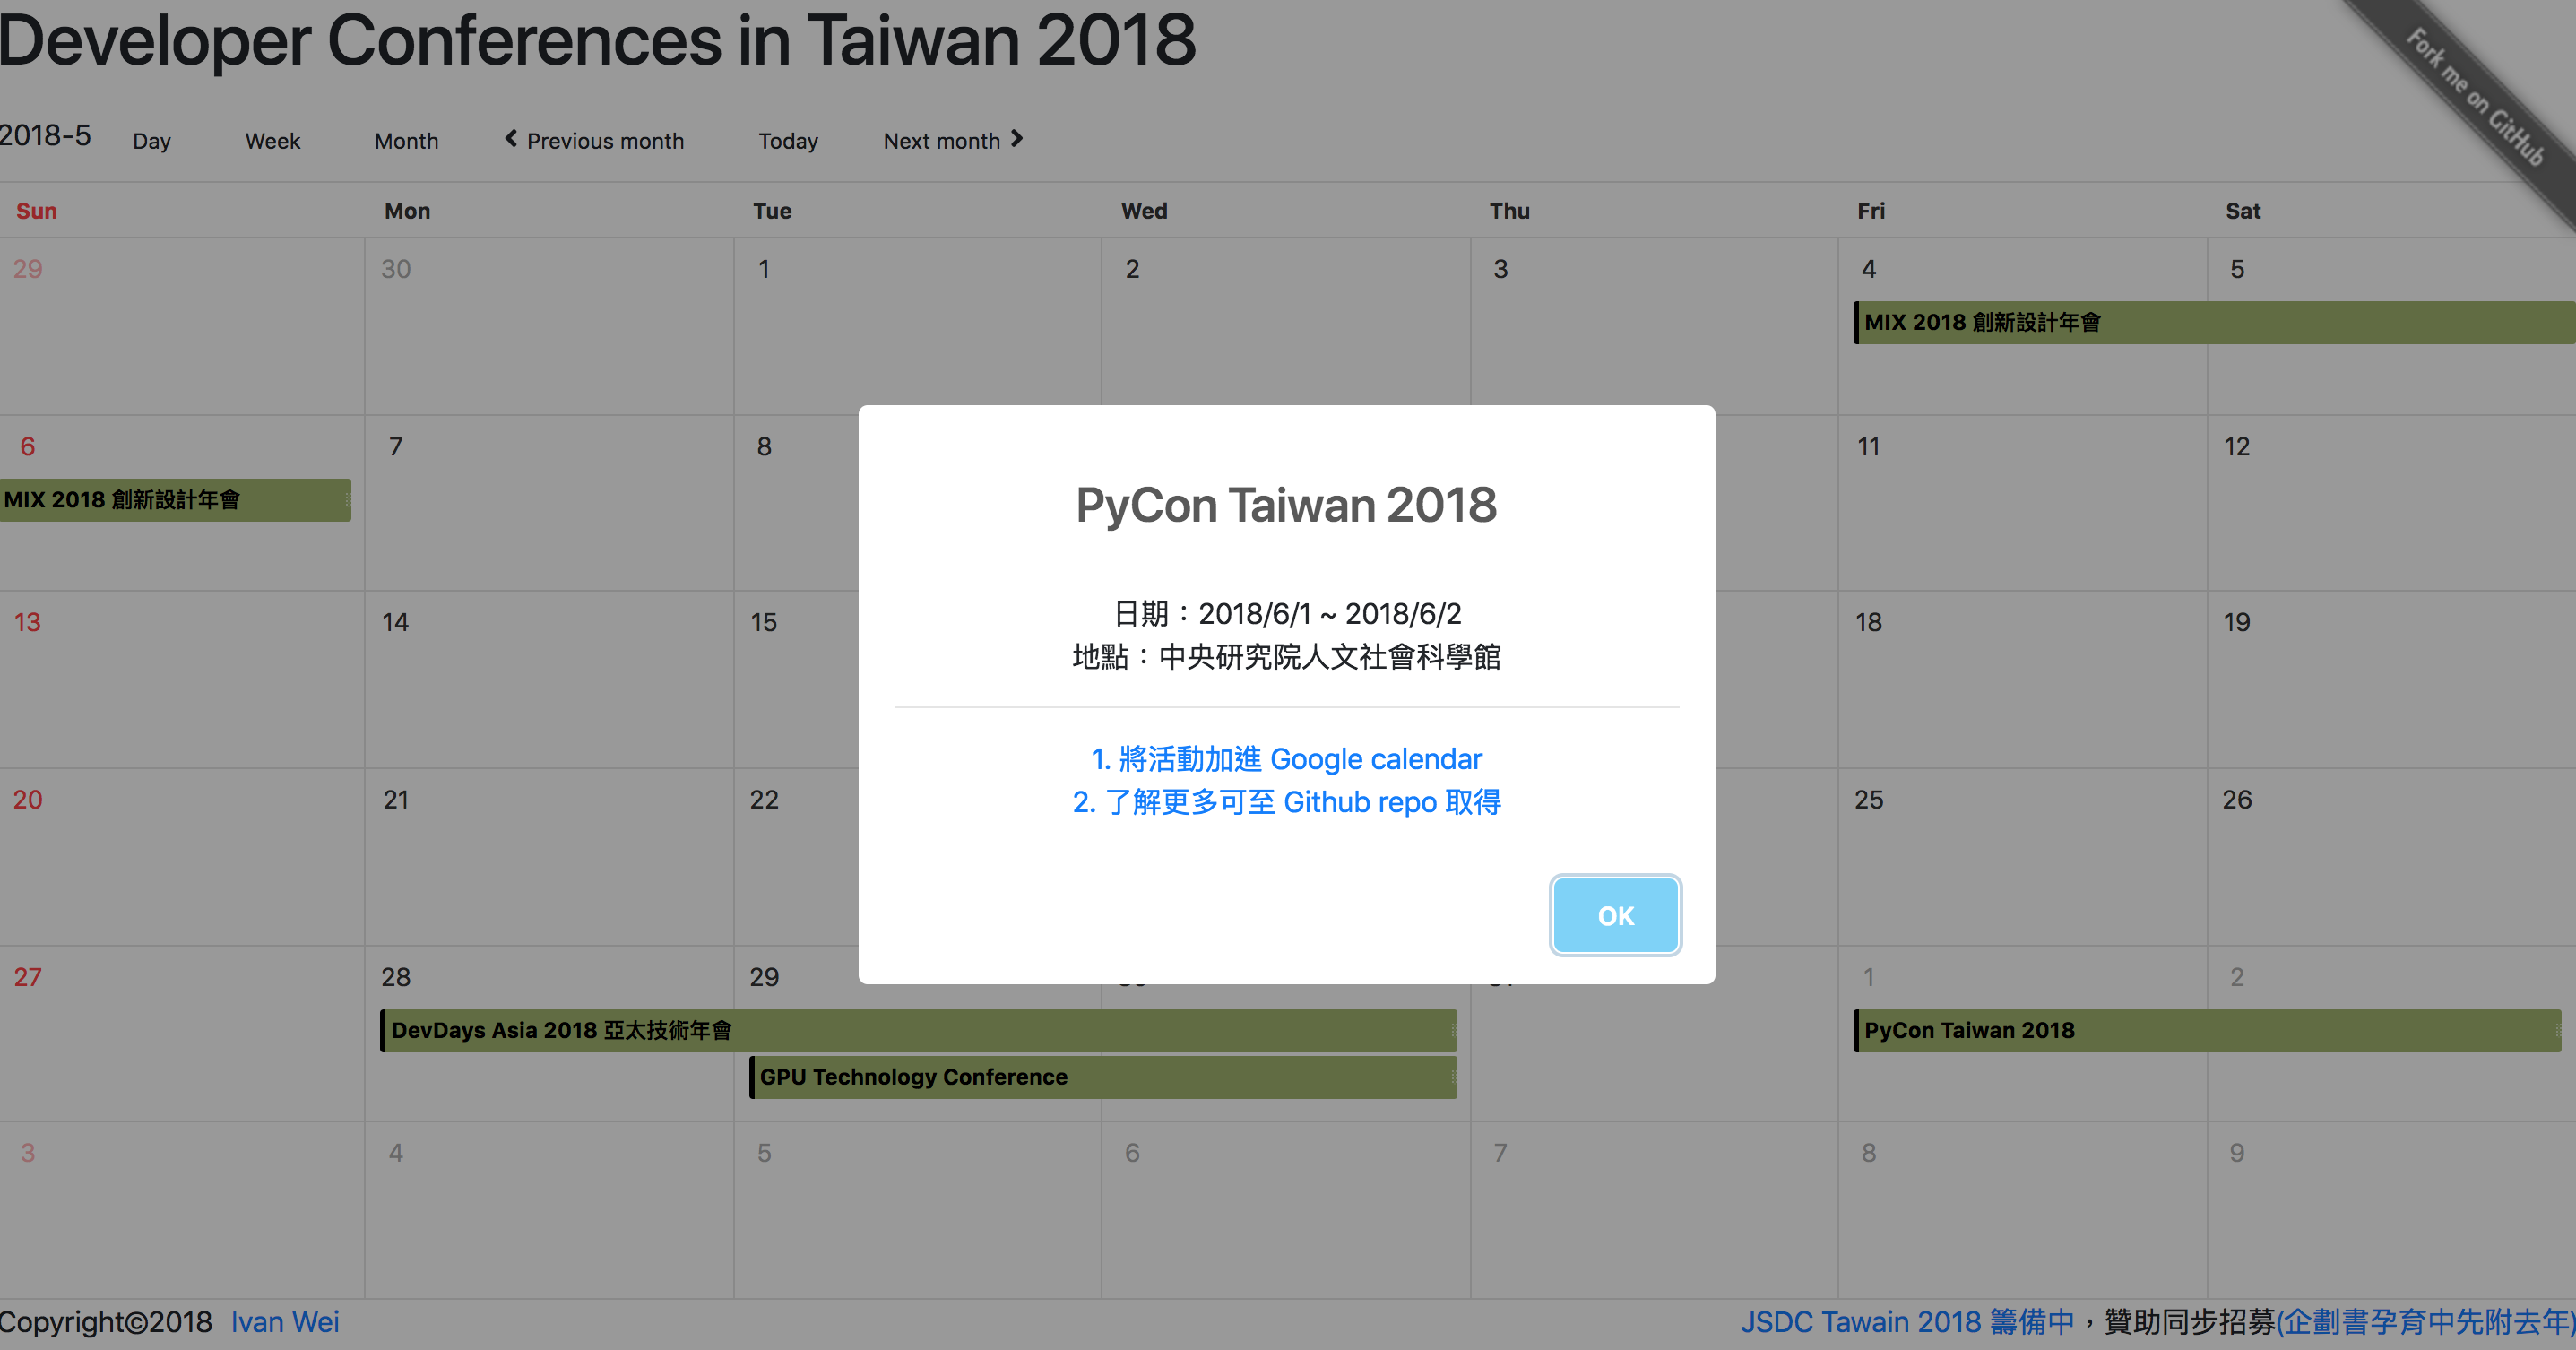 Developer Conferences In Taiwan